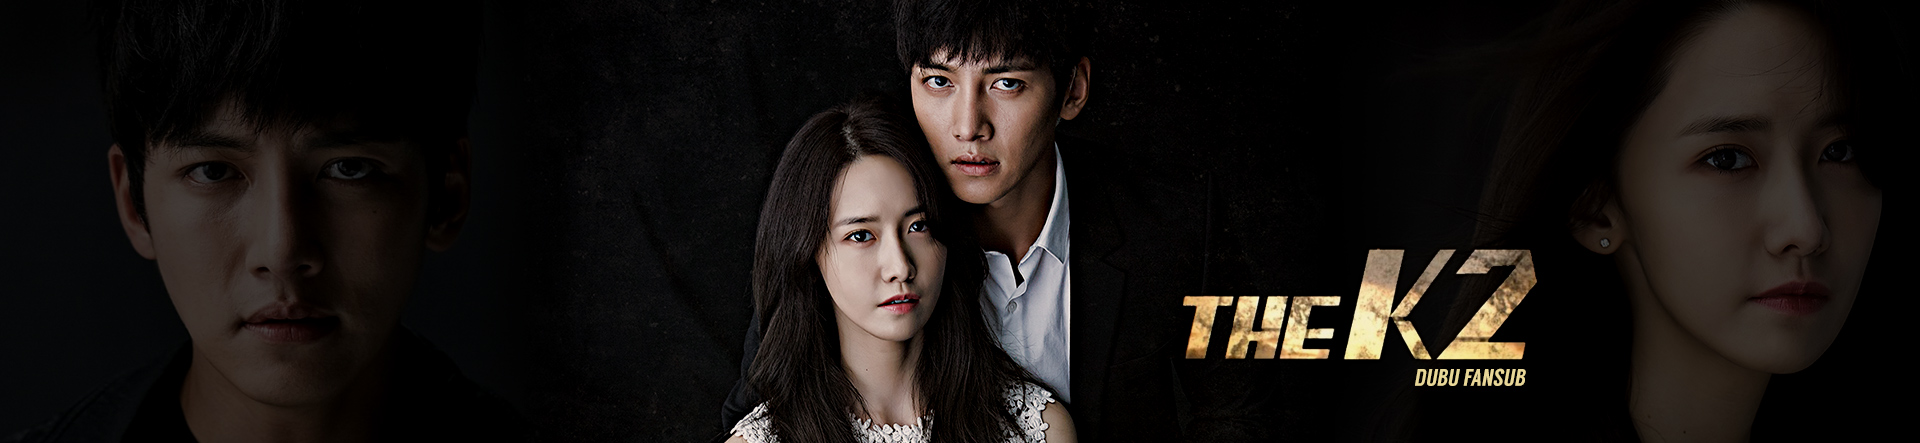 the-k2-yoona-vostfr